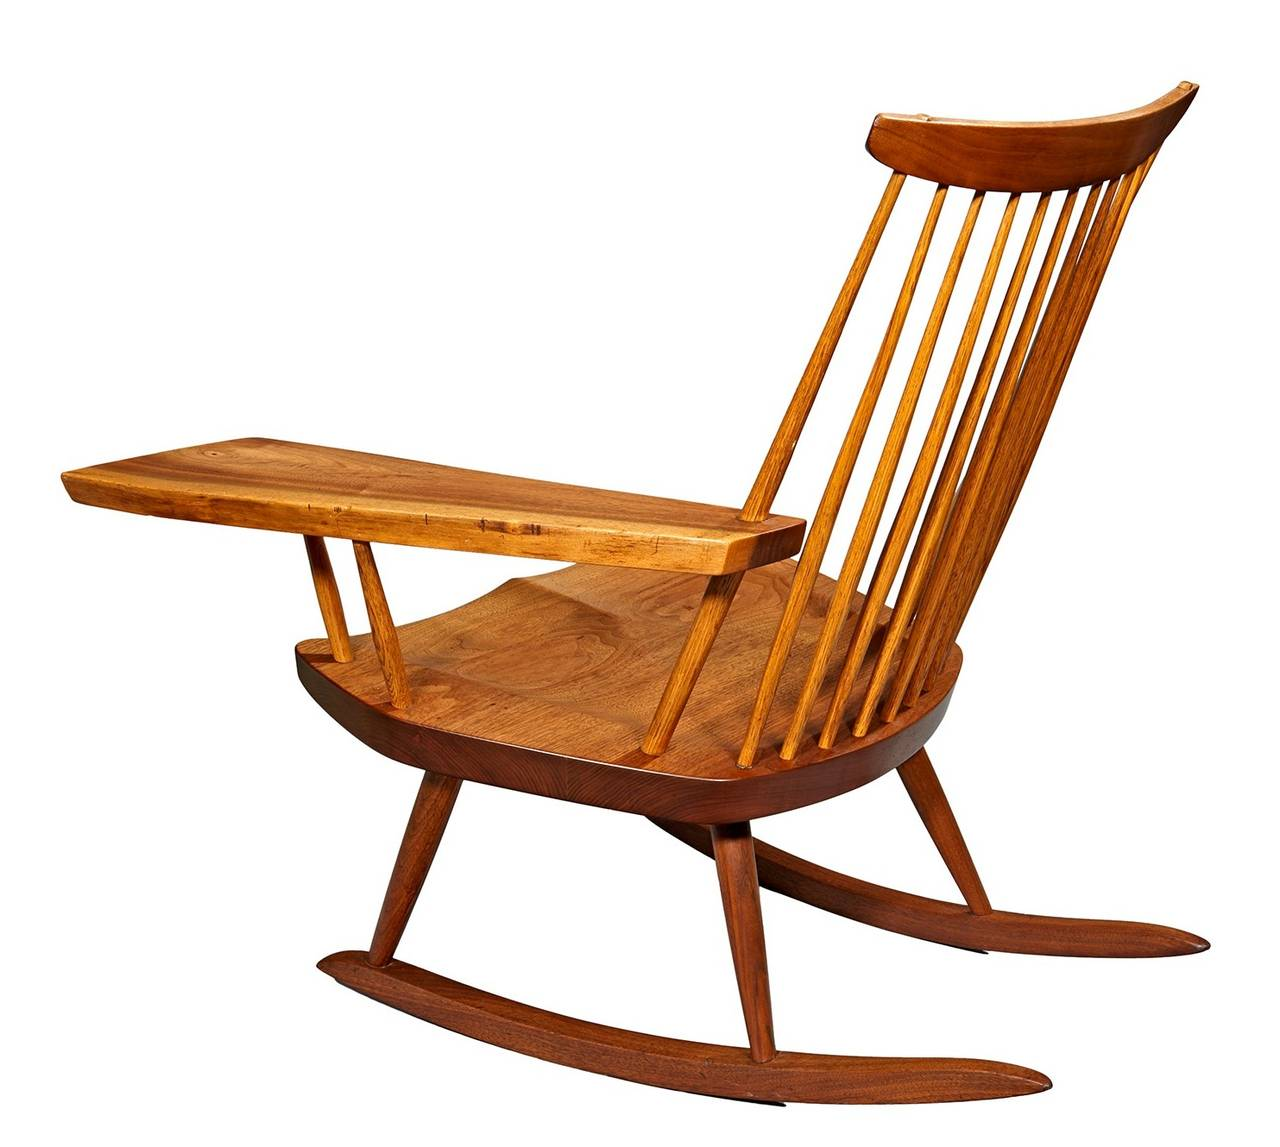 Modern Rocking Chair with Free-Edge Arm by George Nakashima For Sale